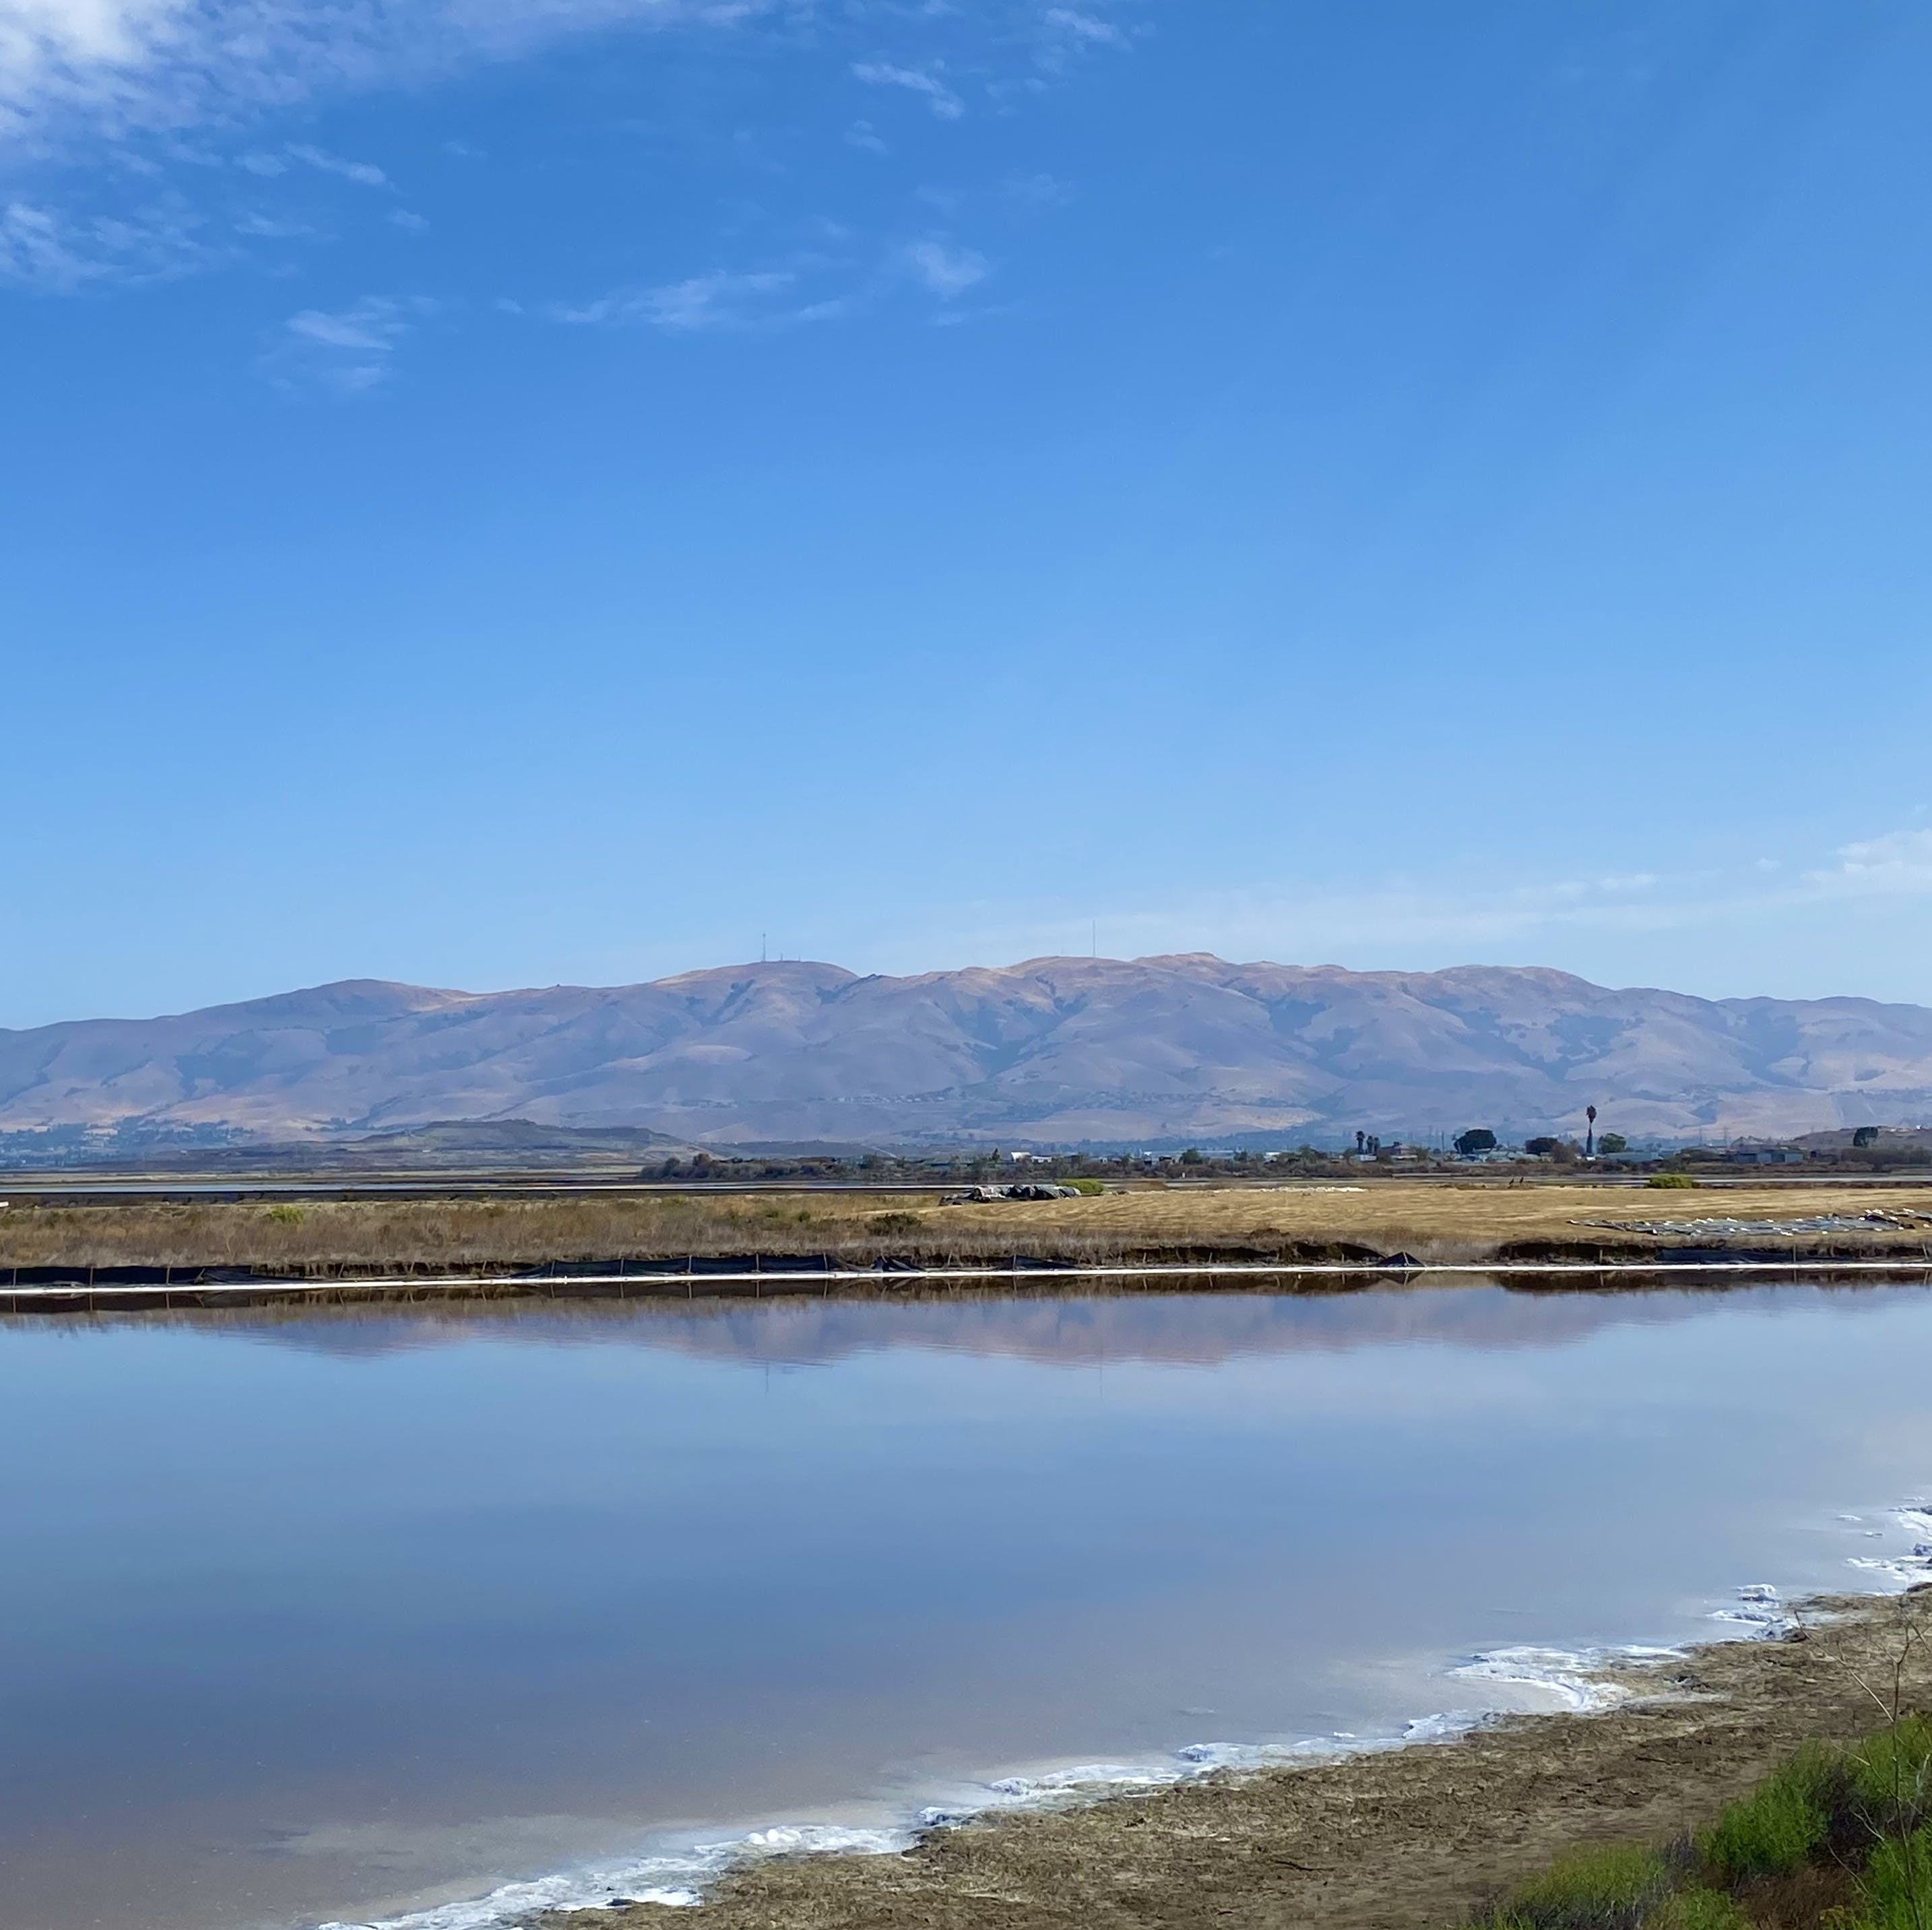 Water scenery along the Guadalupe River Trail in San Jose with mountain ranges in the background